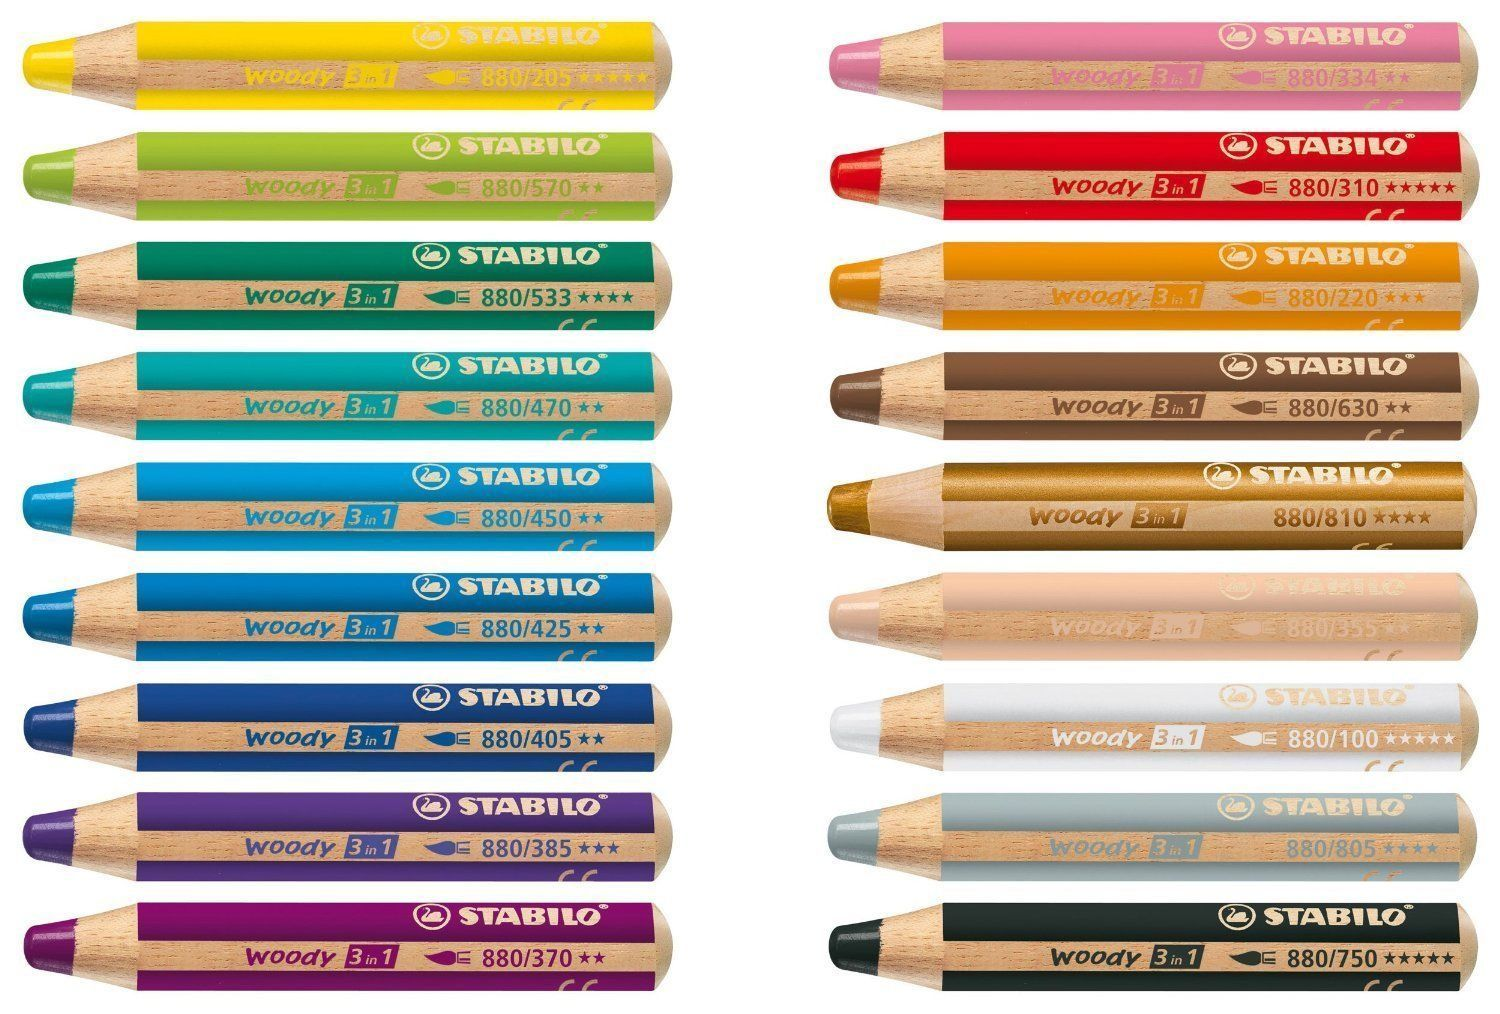 STABILO WOODY 3 in 1 MULTI-TALENTED JUMBO PENCILS - 18 Colours Available for sale  USA